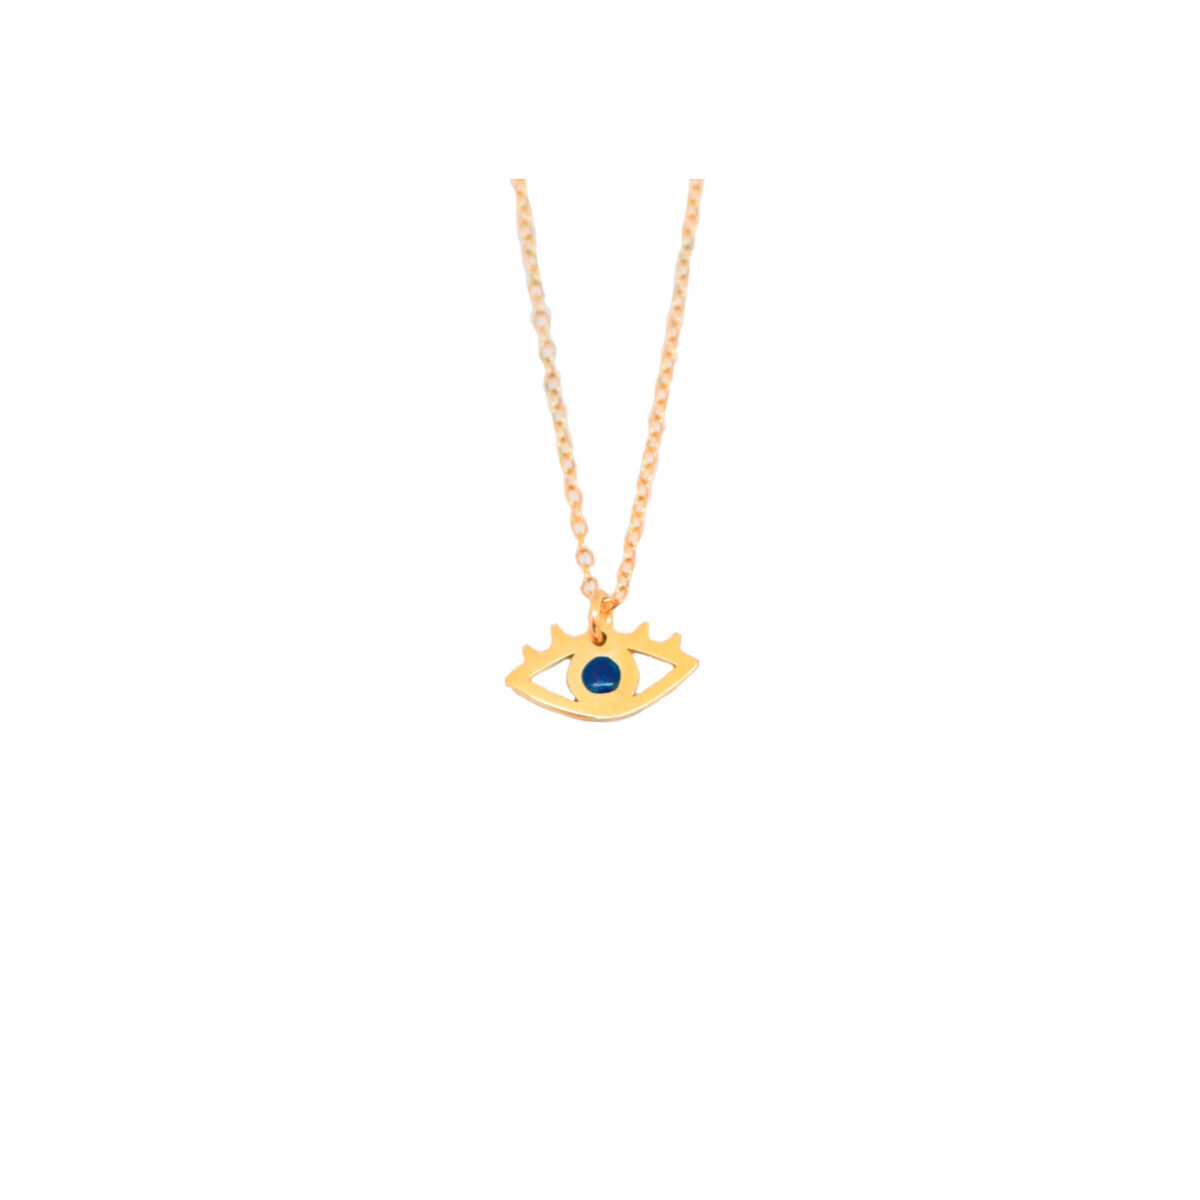 All Eyes on You II gold plated necklace